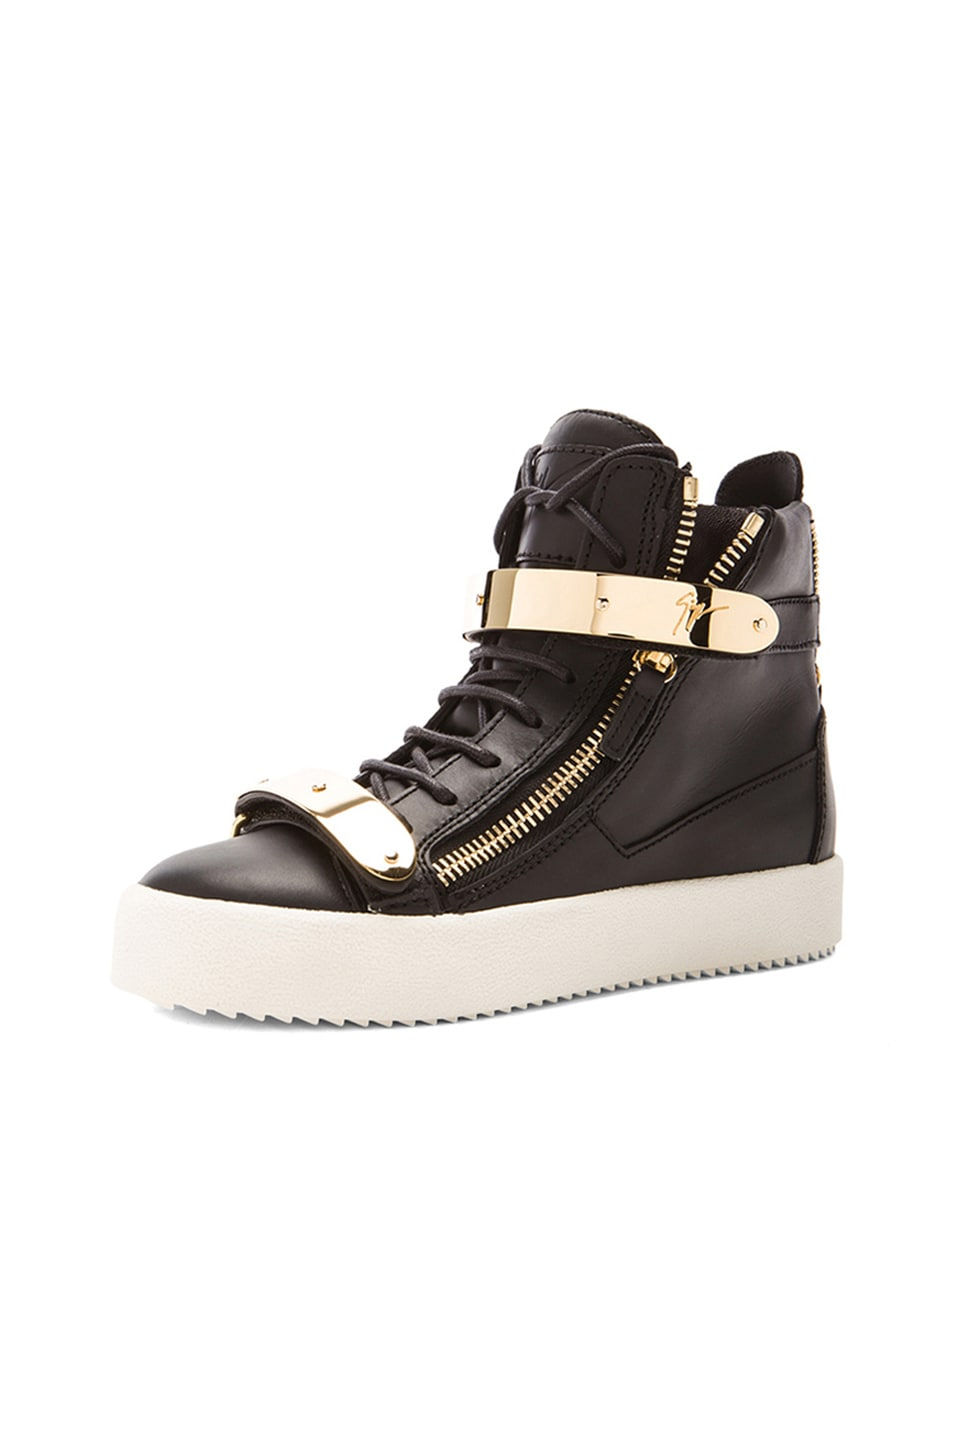 Image 2 of Giuseppe Zanotti Leather Bucked Sneakers in Black